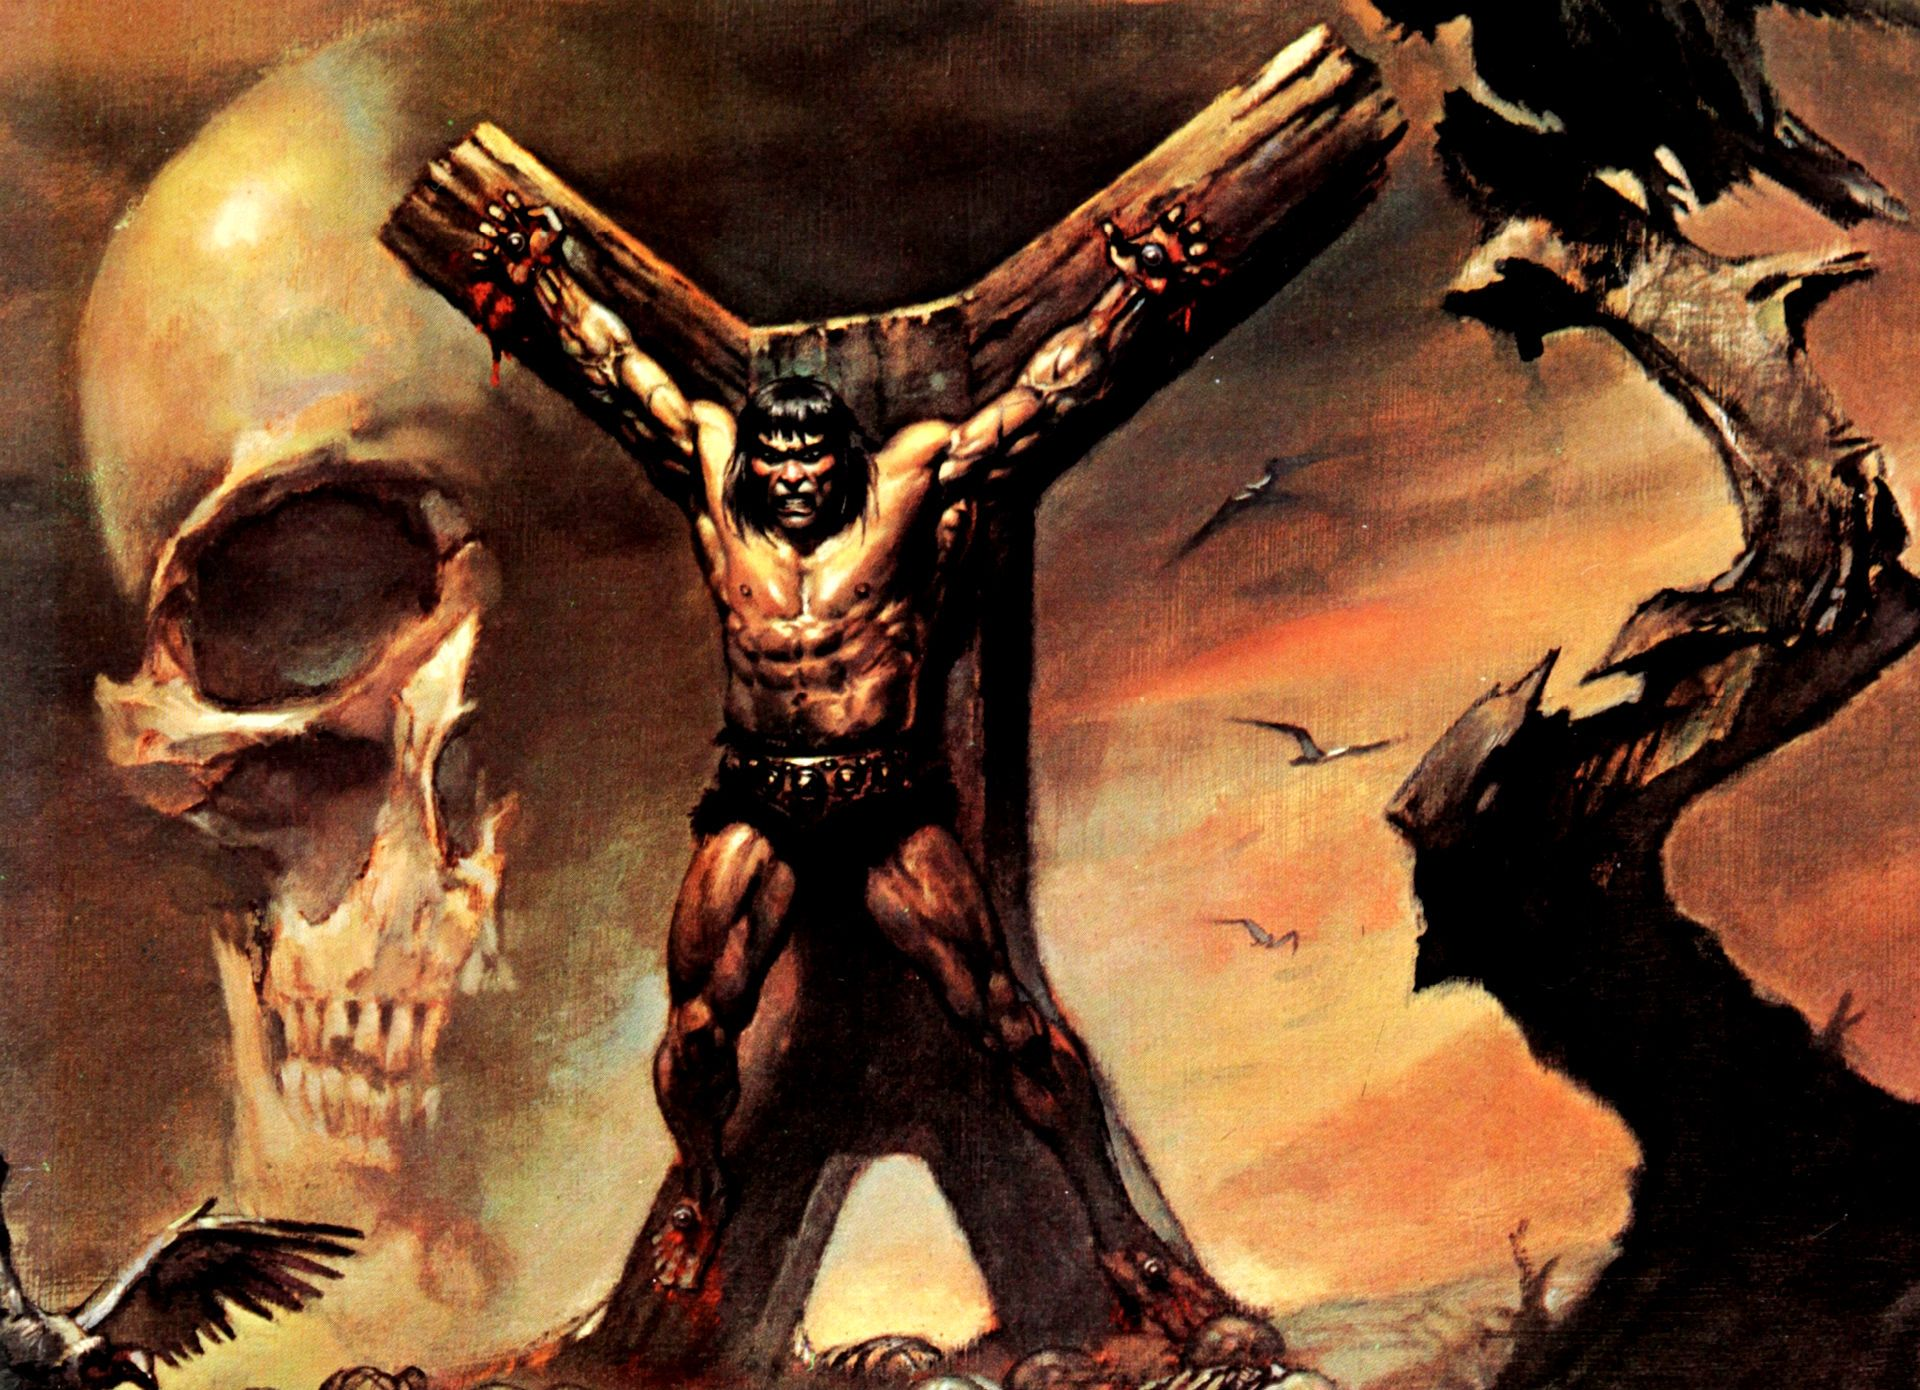 Conan The Barbarian Wallpaper Displaying 19 Images For